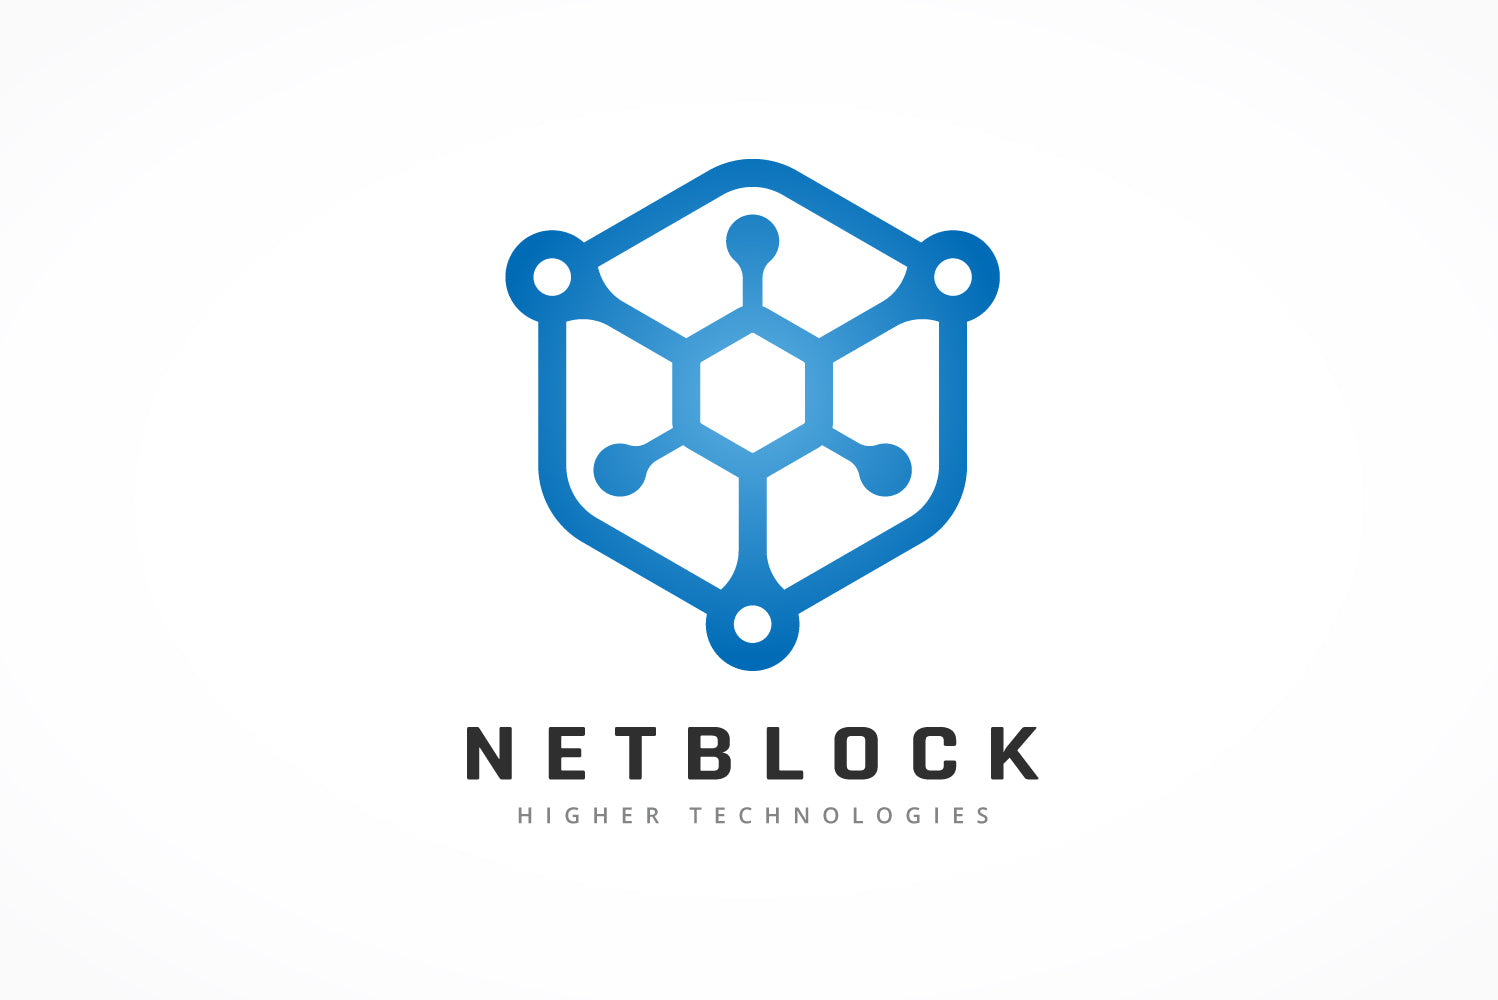 Hexagonal Network Block Logo